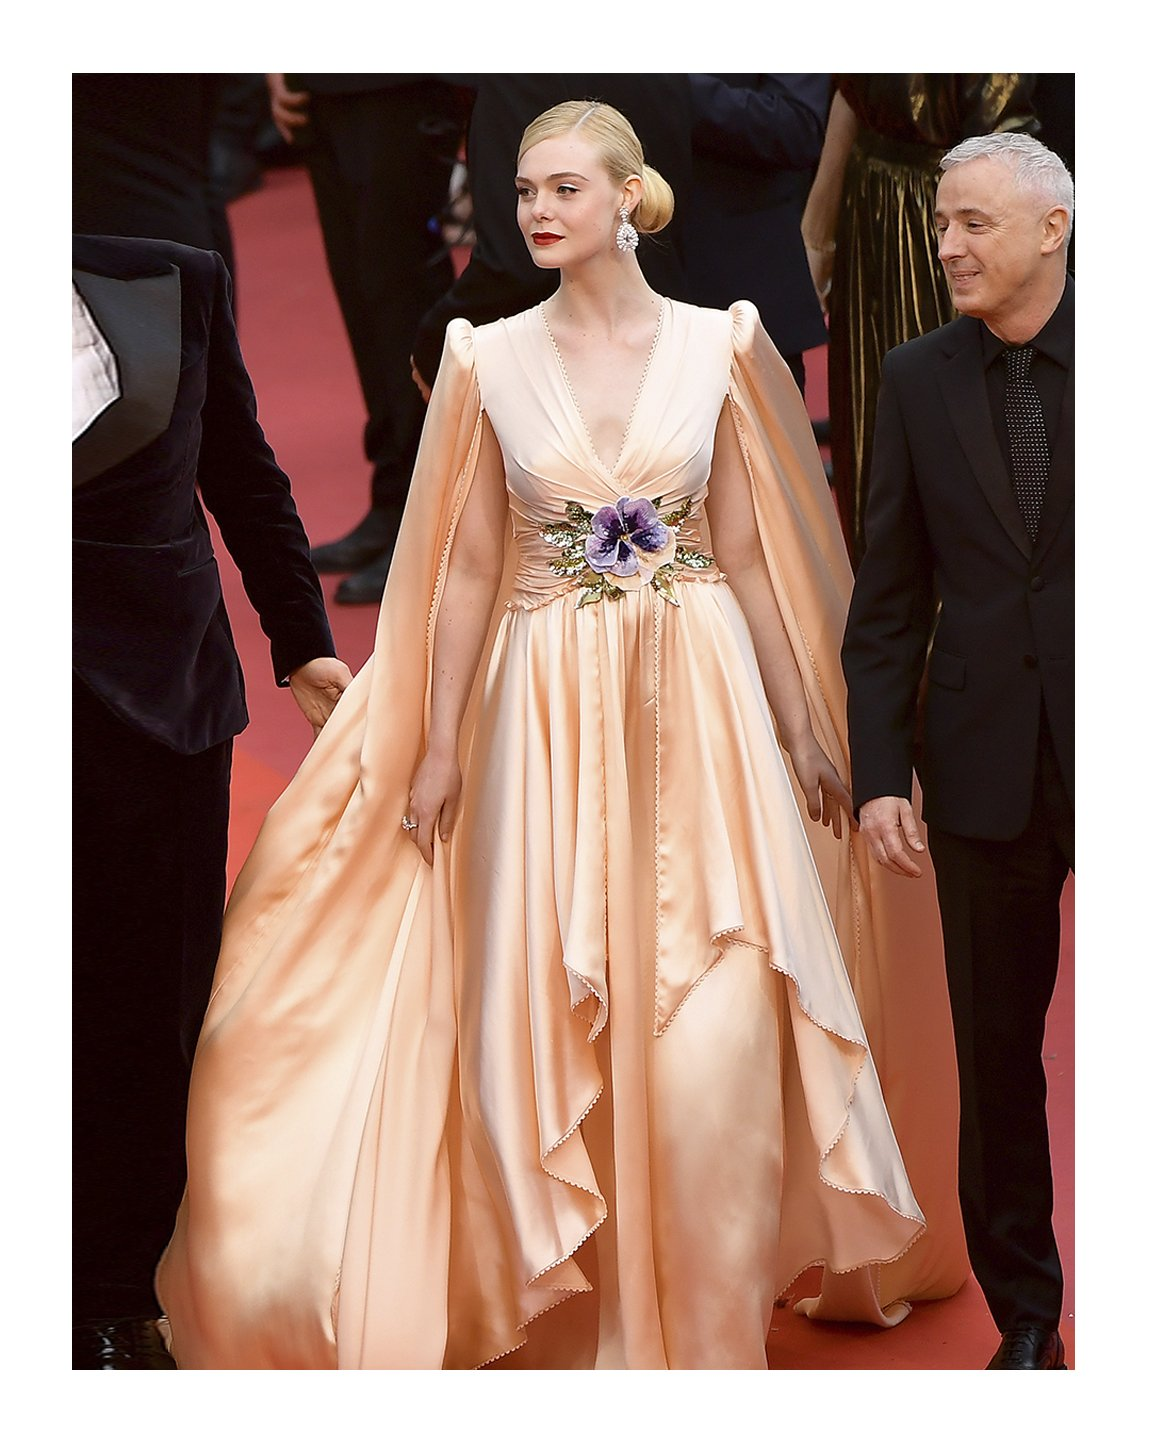 #ElleFanning wore a custom #Gucci soft pink silk gown with cape, purple and ivory floral embroidery at the waist by #AlessandroMichele to the Opening Ceremony of the 72nd annual @Festival_Cannes at Palais des Festivals. https://t.co/r4LkUq9DQn